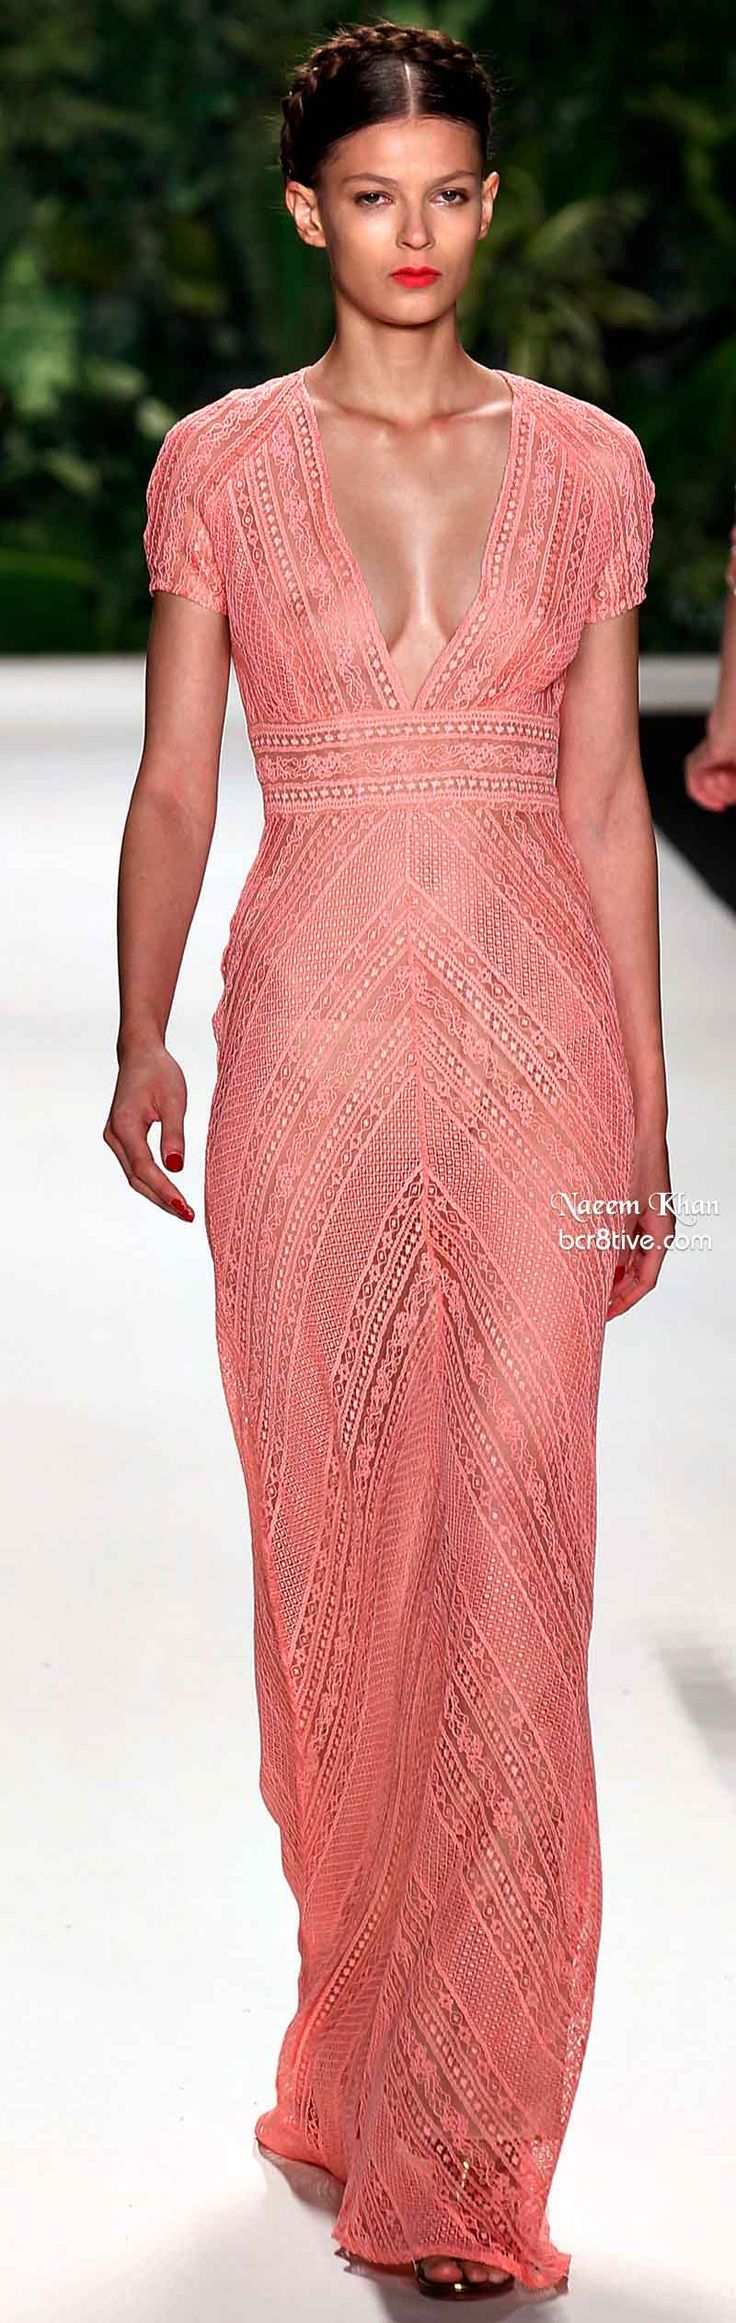 Naeem Khan Spring 2014 #NYFW .. Lesson: Observe the body under the dress and the shadow shapes that make it stand out. subtle and sexy